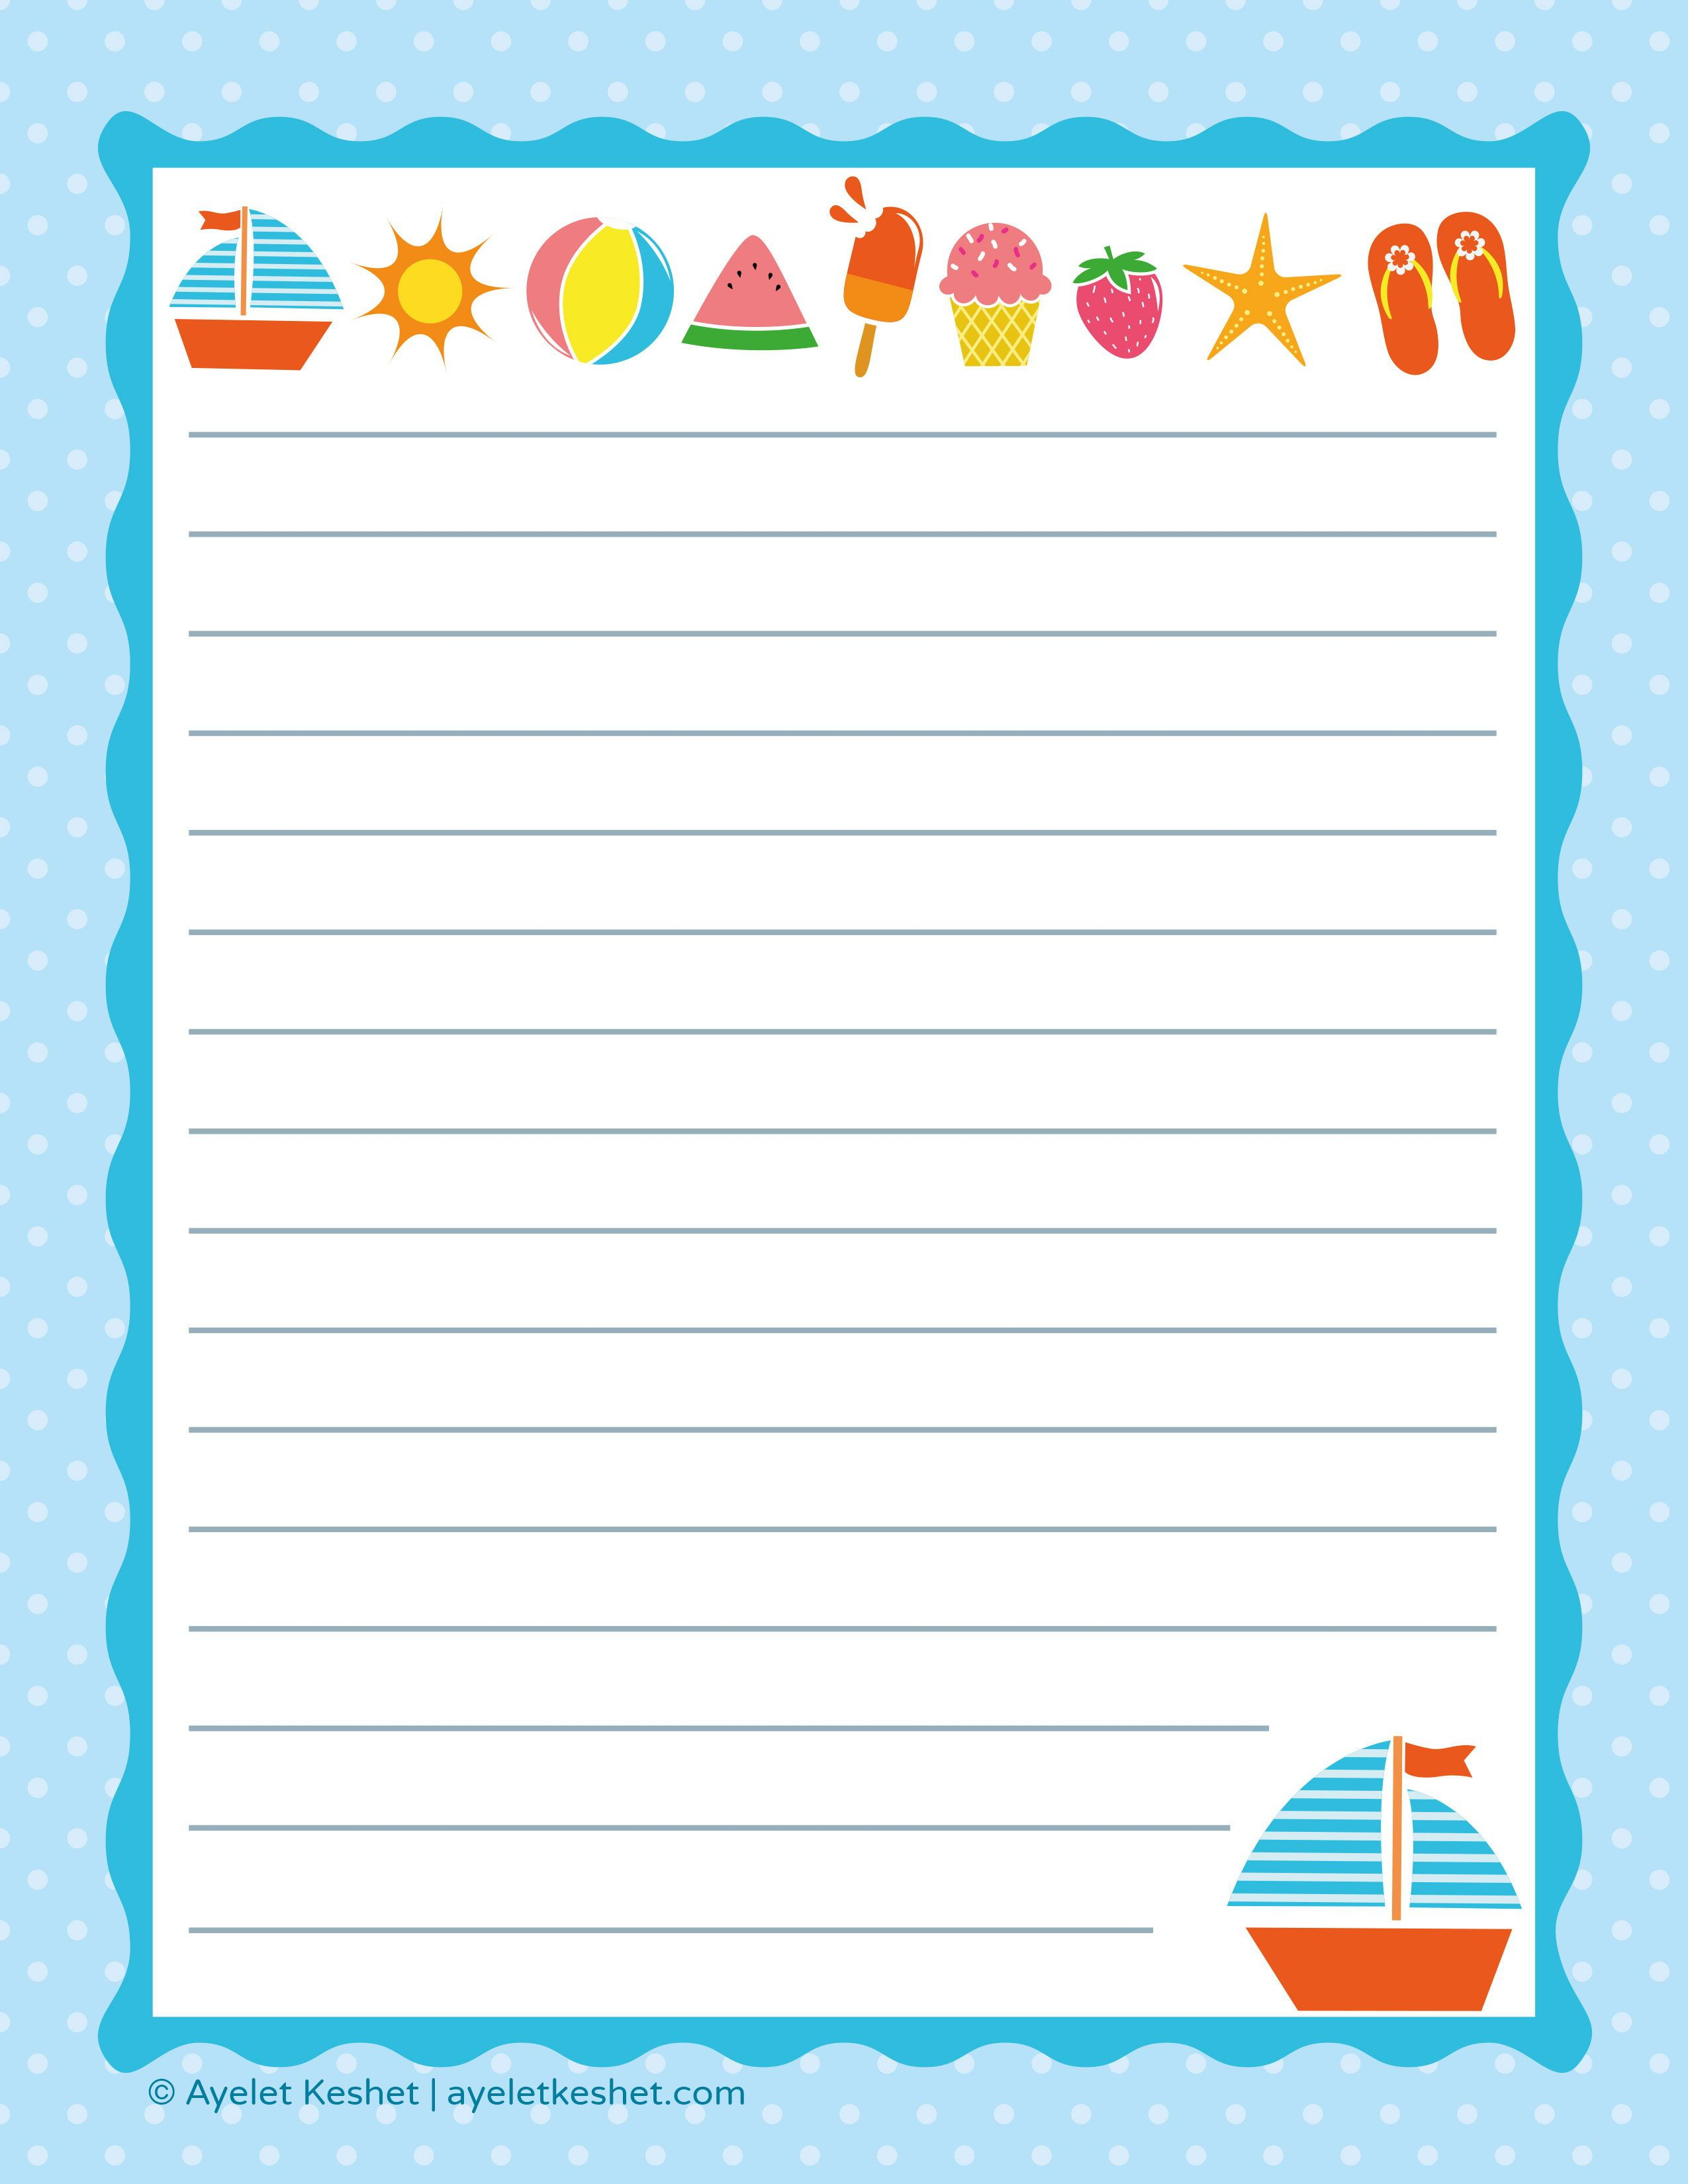 Free Printable Letter Paper | Printables To Go | Pinterest | Free - Free Printable Paper